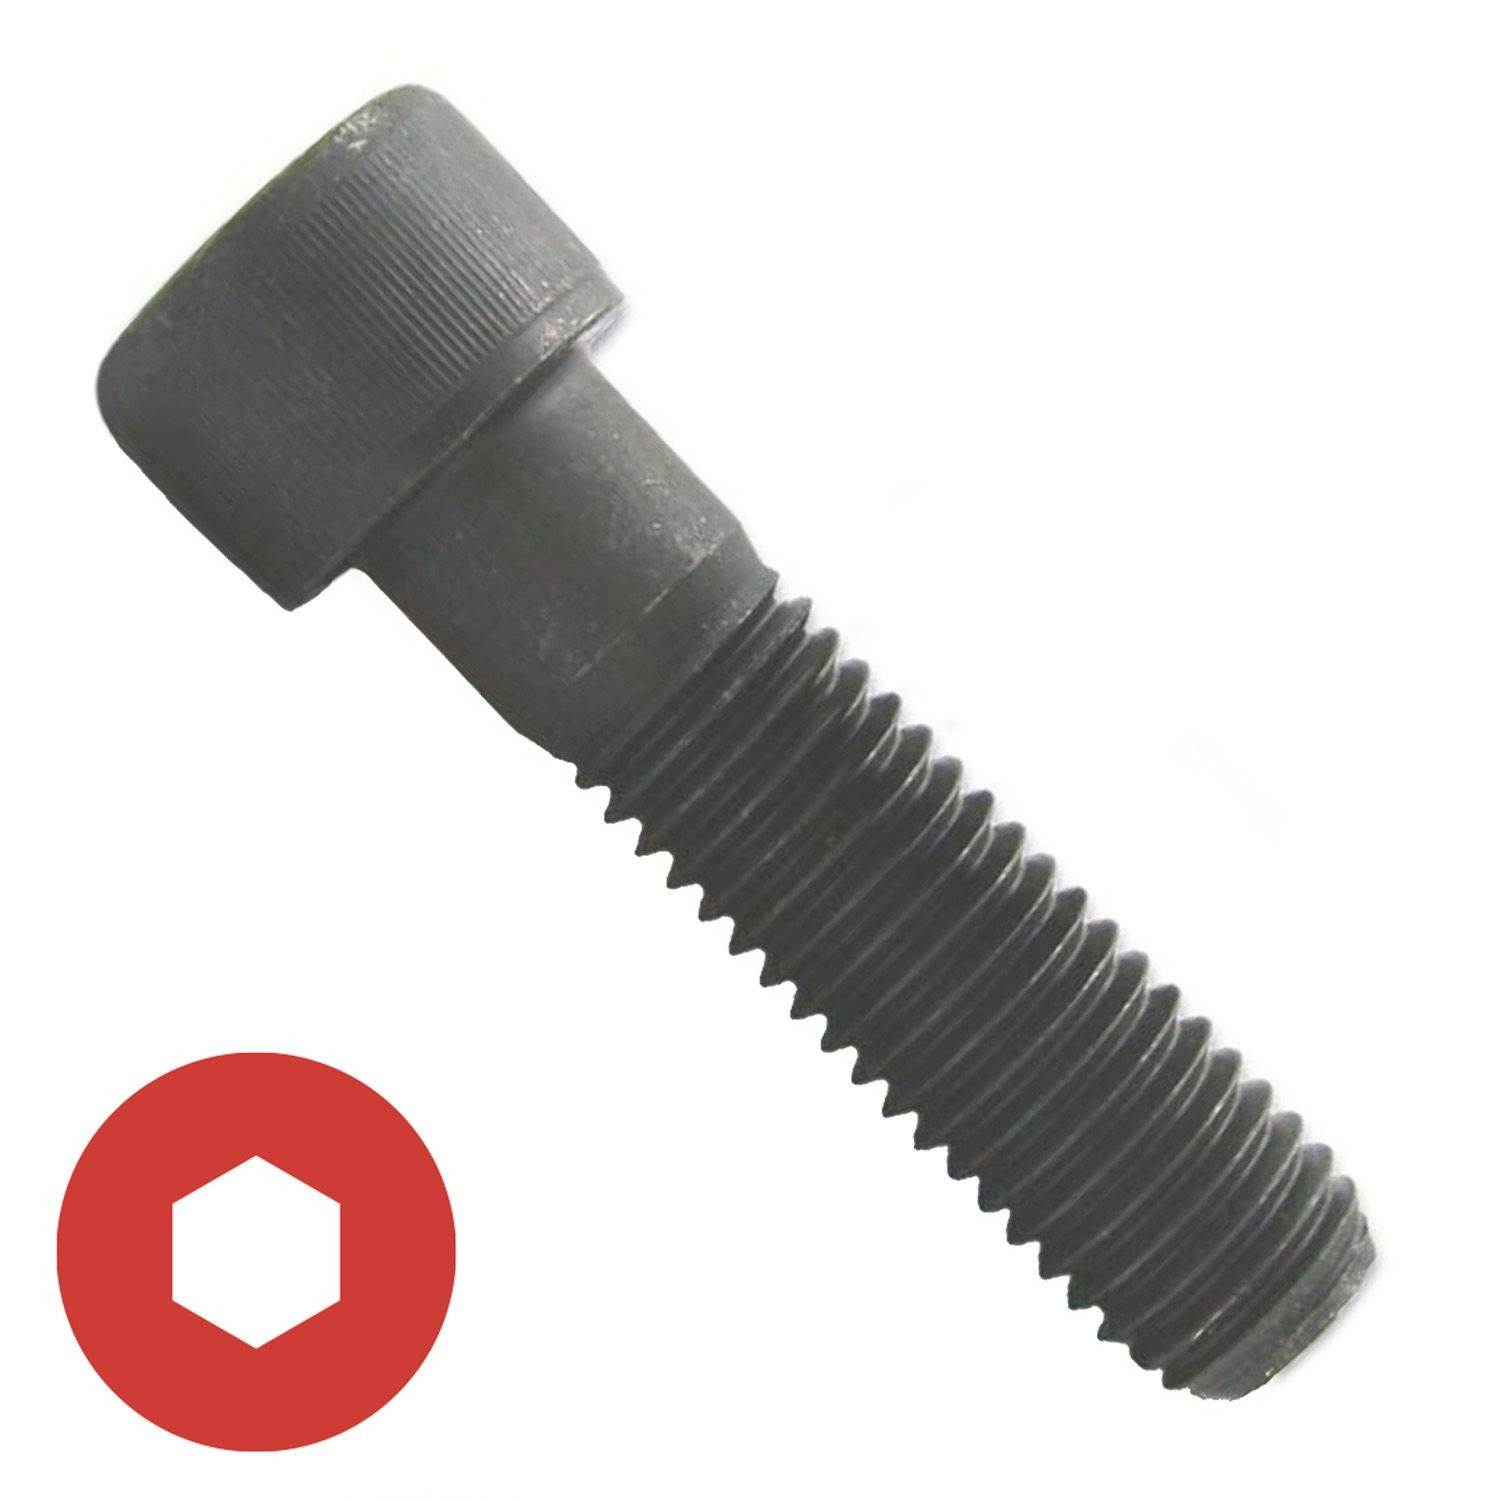 "#10-24 x 4"" Socket Head Cap Screw"